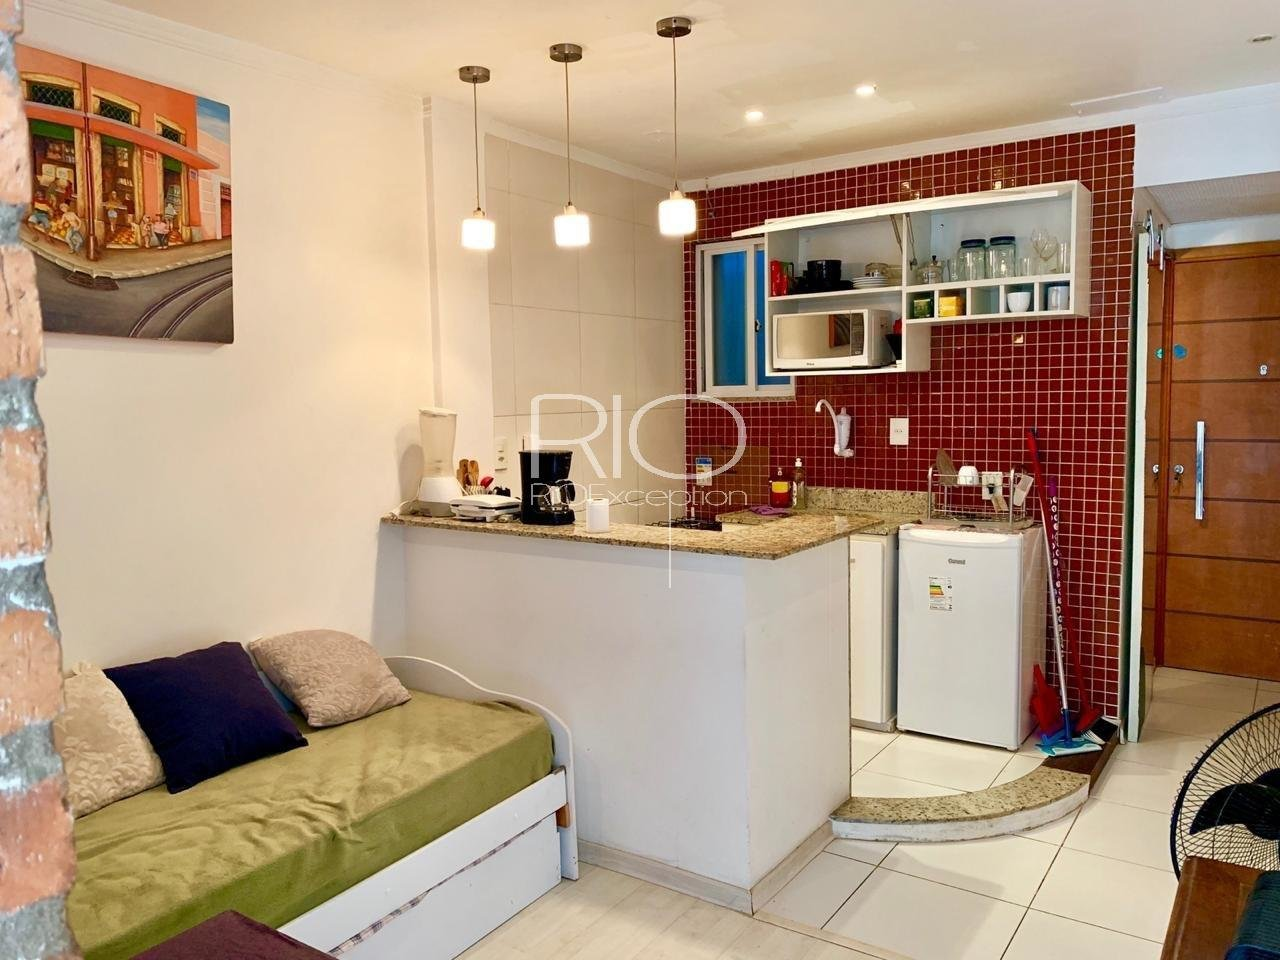 Copacabana posto 6 - Nice low price studio - Excellent rental investment!